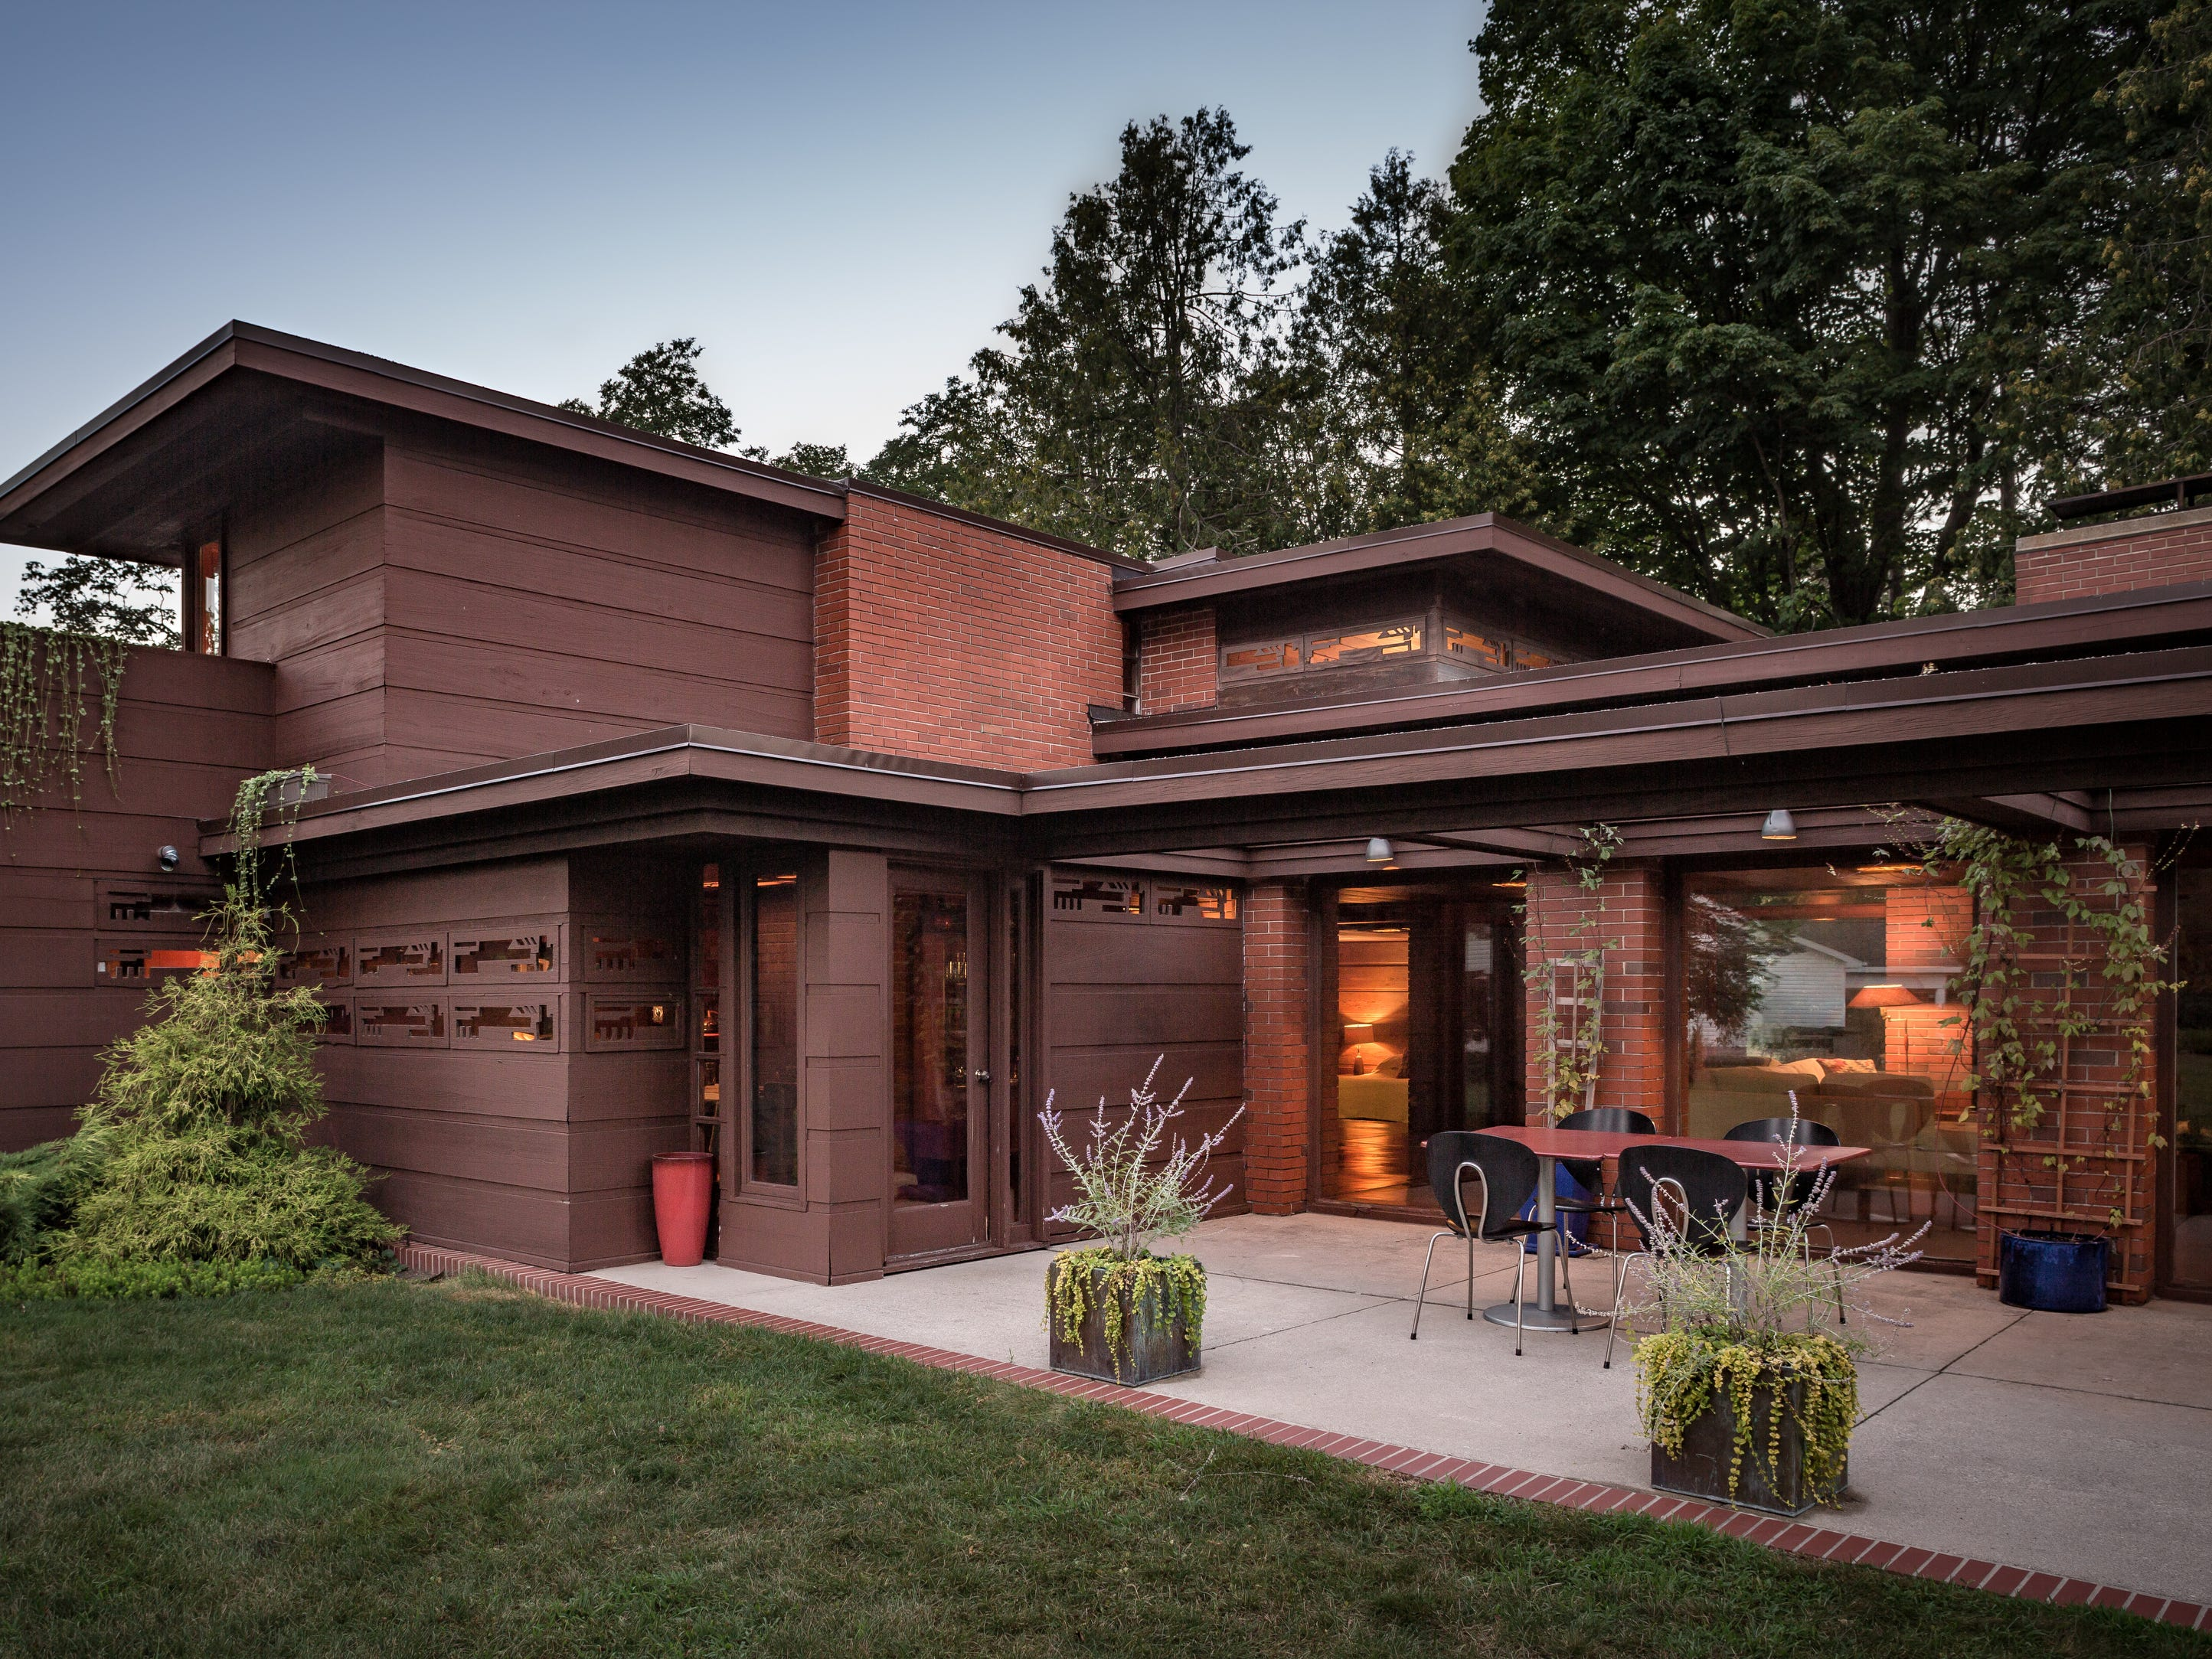 In Two Rivers, Still Bend home offers live-in glimpse of Frank Lloyd Wright's genius